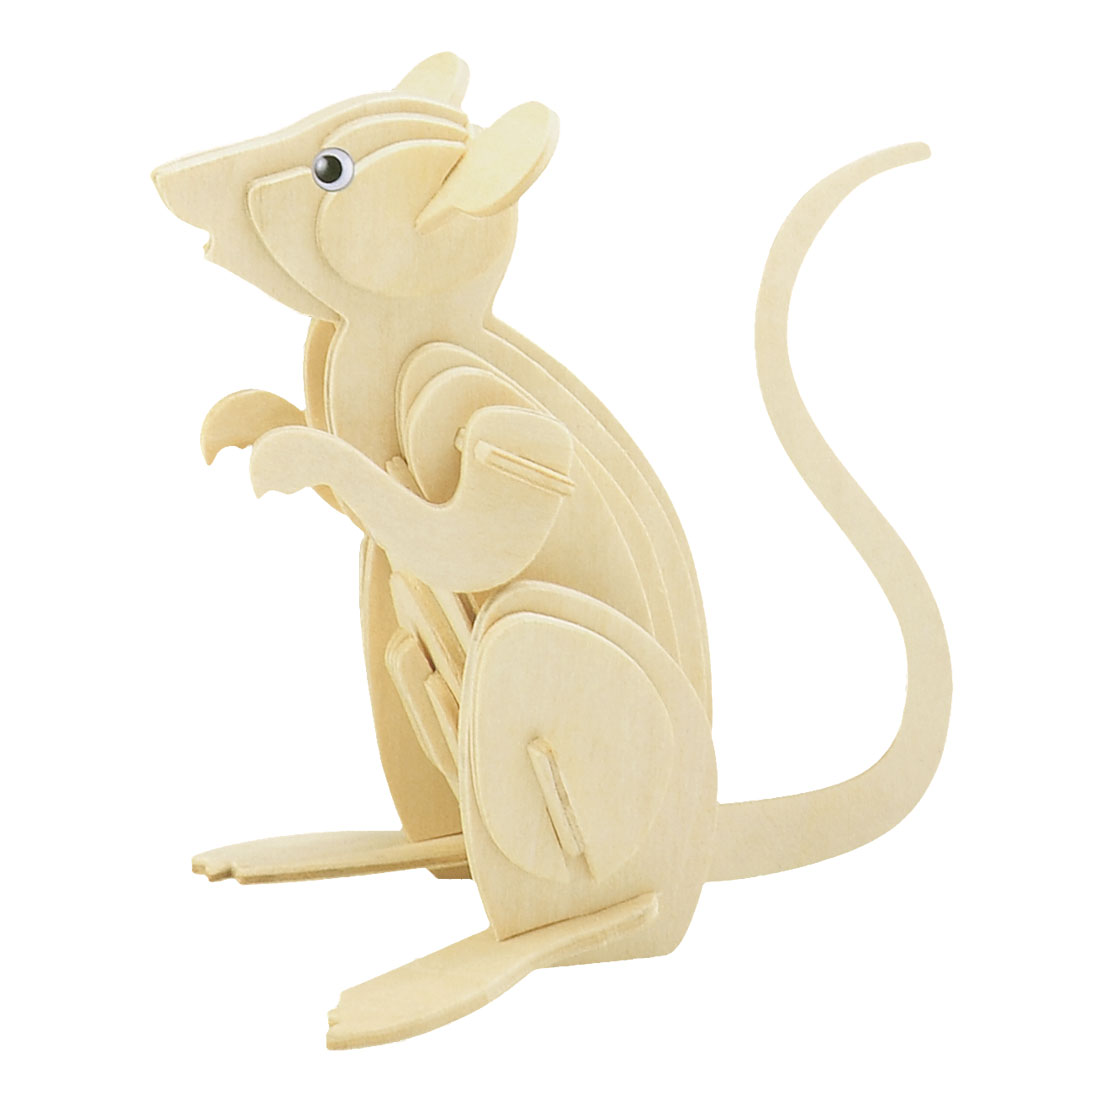 Child Wooden Mouse Model 3D Woodcraft Construction Kit Intelligence Puzzle Toy